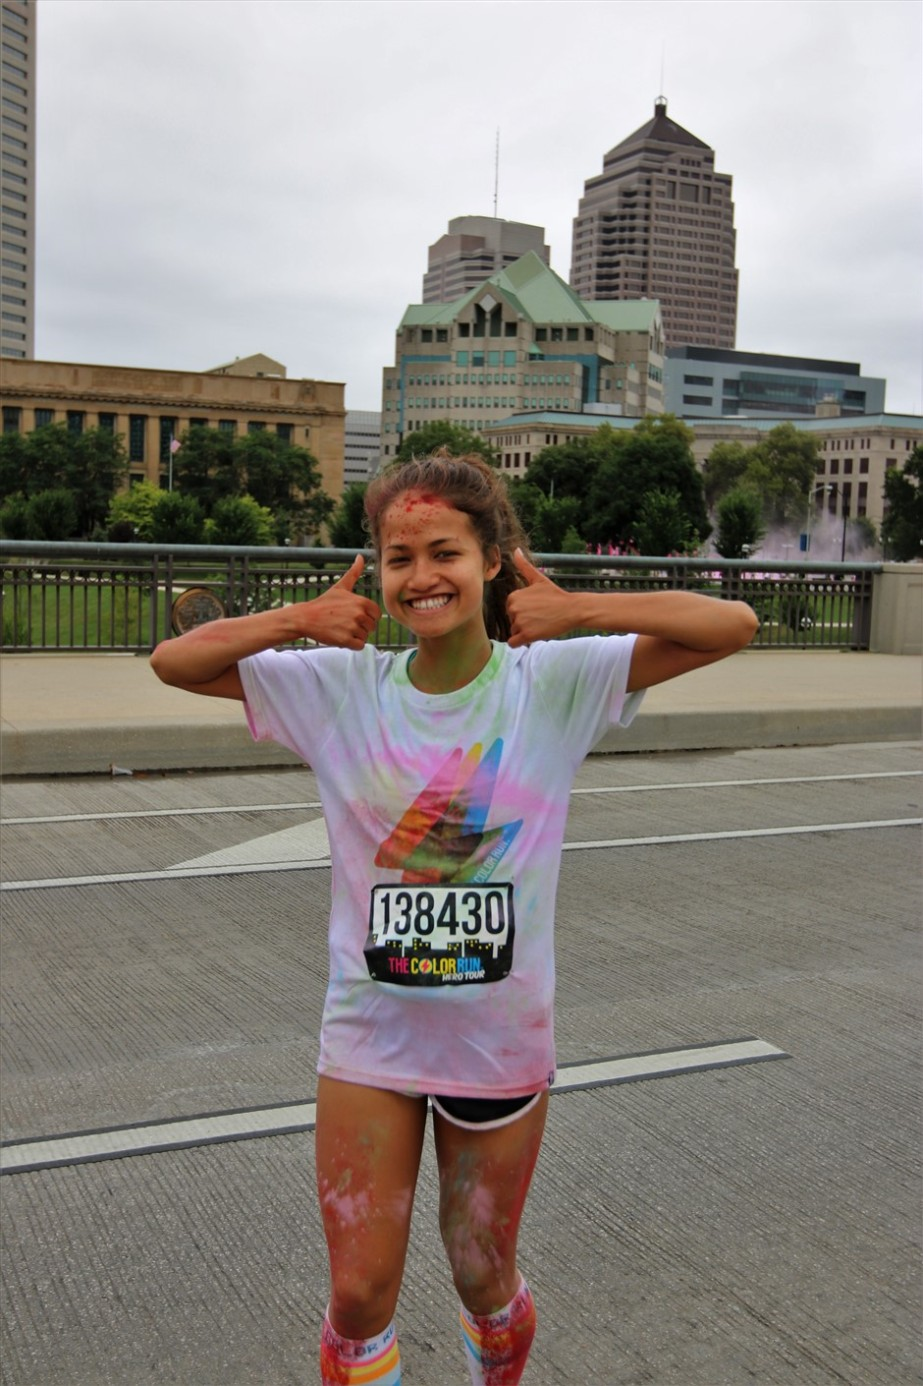 2018 07 21 101 Columbus Color Run.jpg